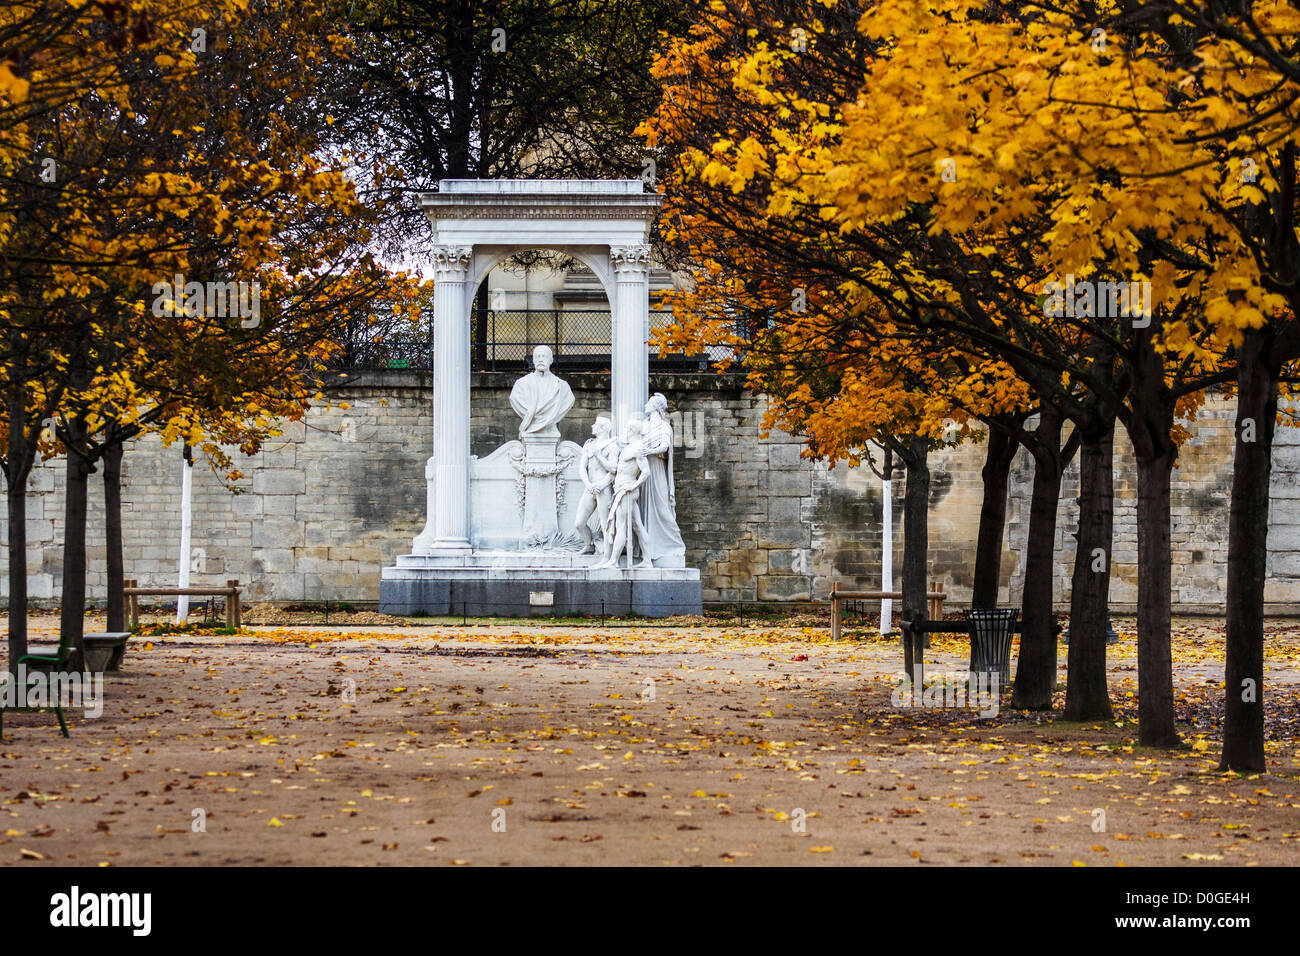 Jardin des Tuileries in Autumn with Waldeck Rousseau monument in background, Paris, France - Stock Image